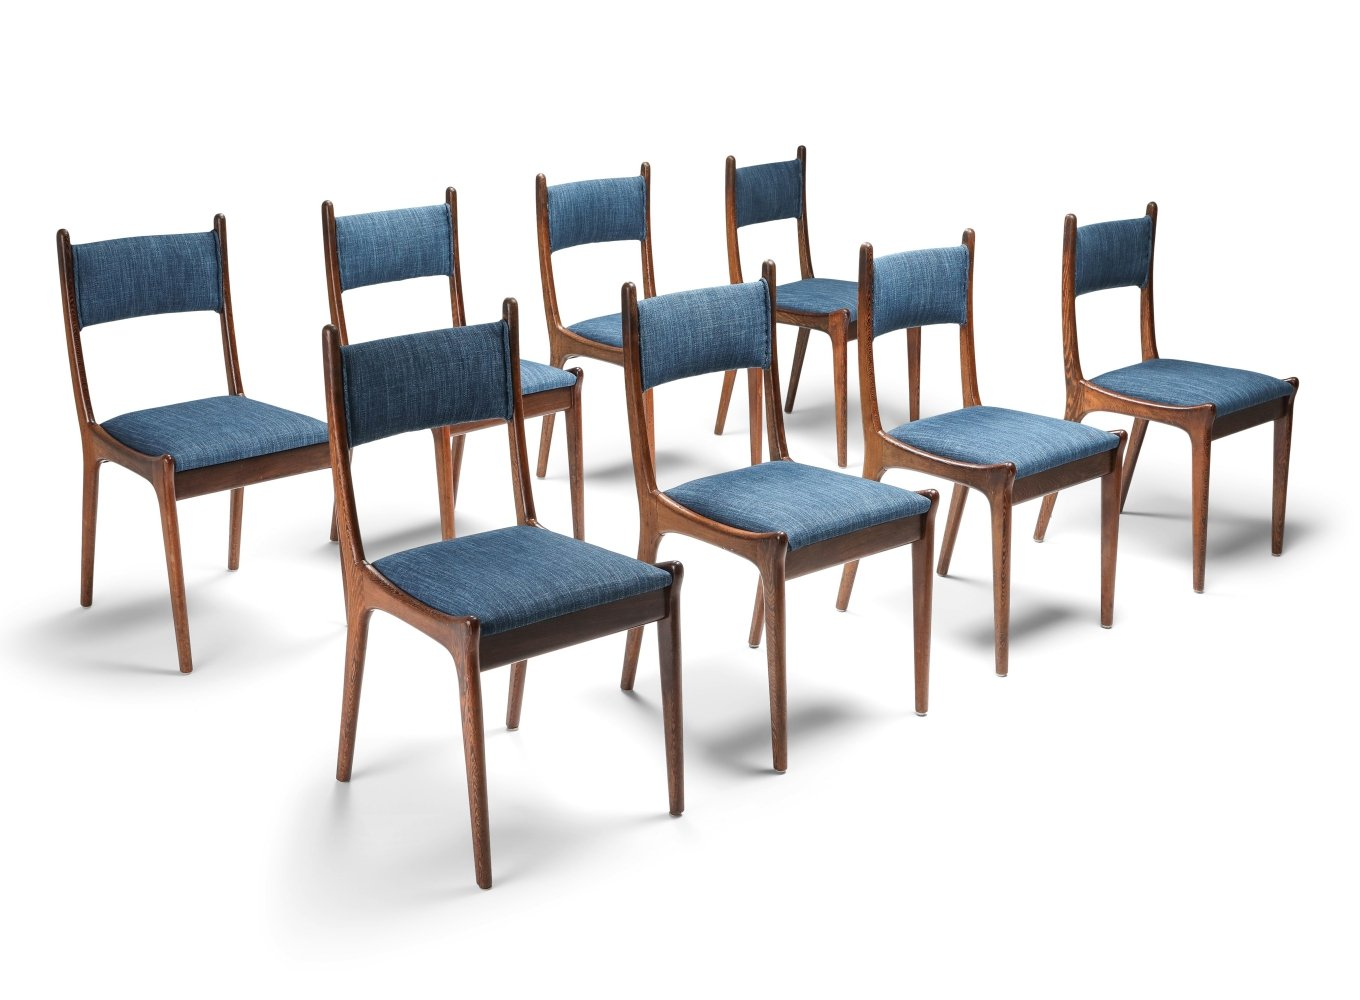 Image of: Mid Century Modern Dining Chairs In Wenge Cherry 1960s 142477